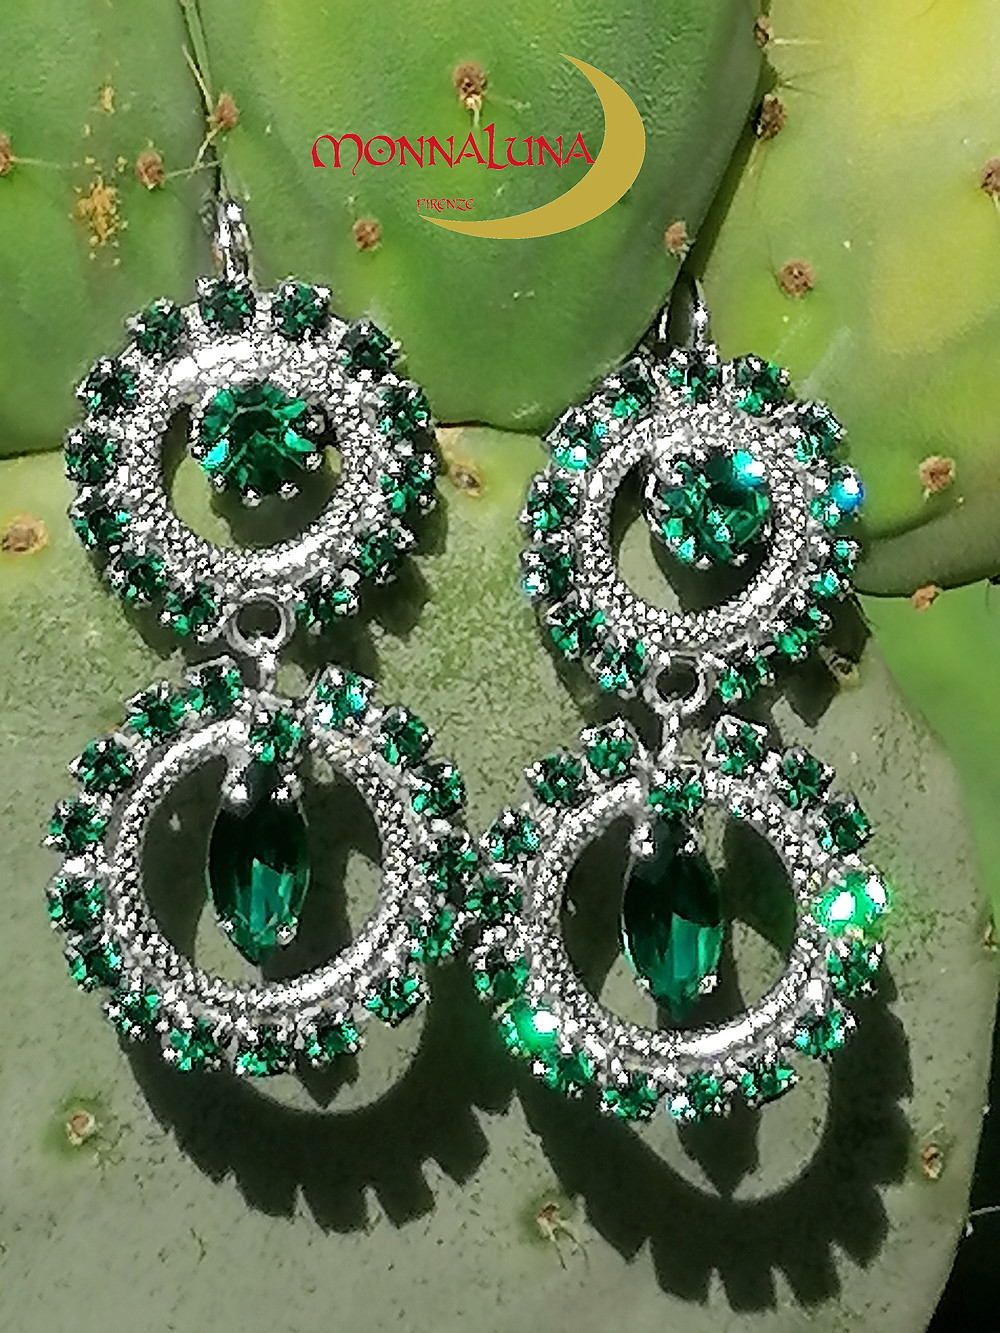 Emerald green crystals surround knurled circle elements in white gold